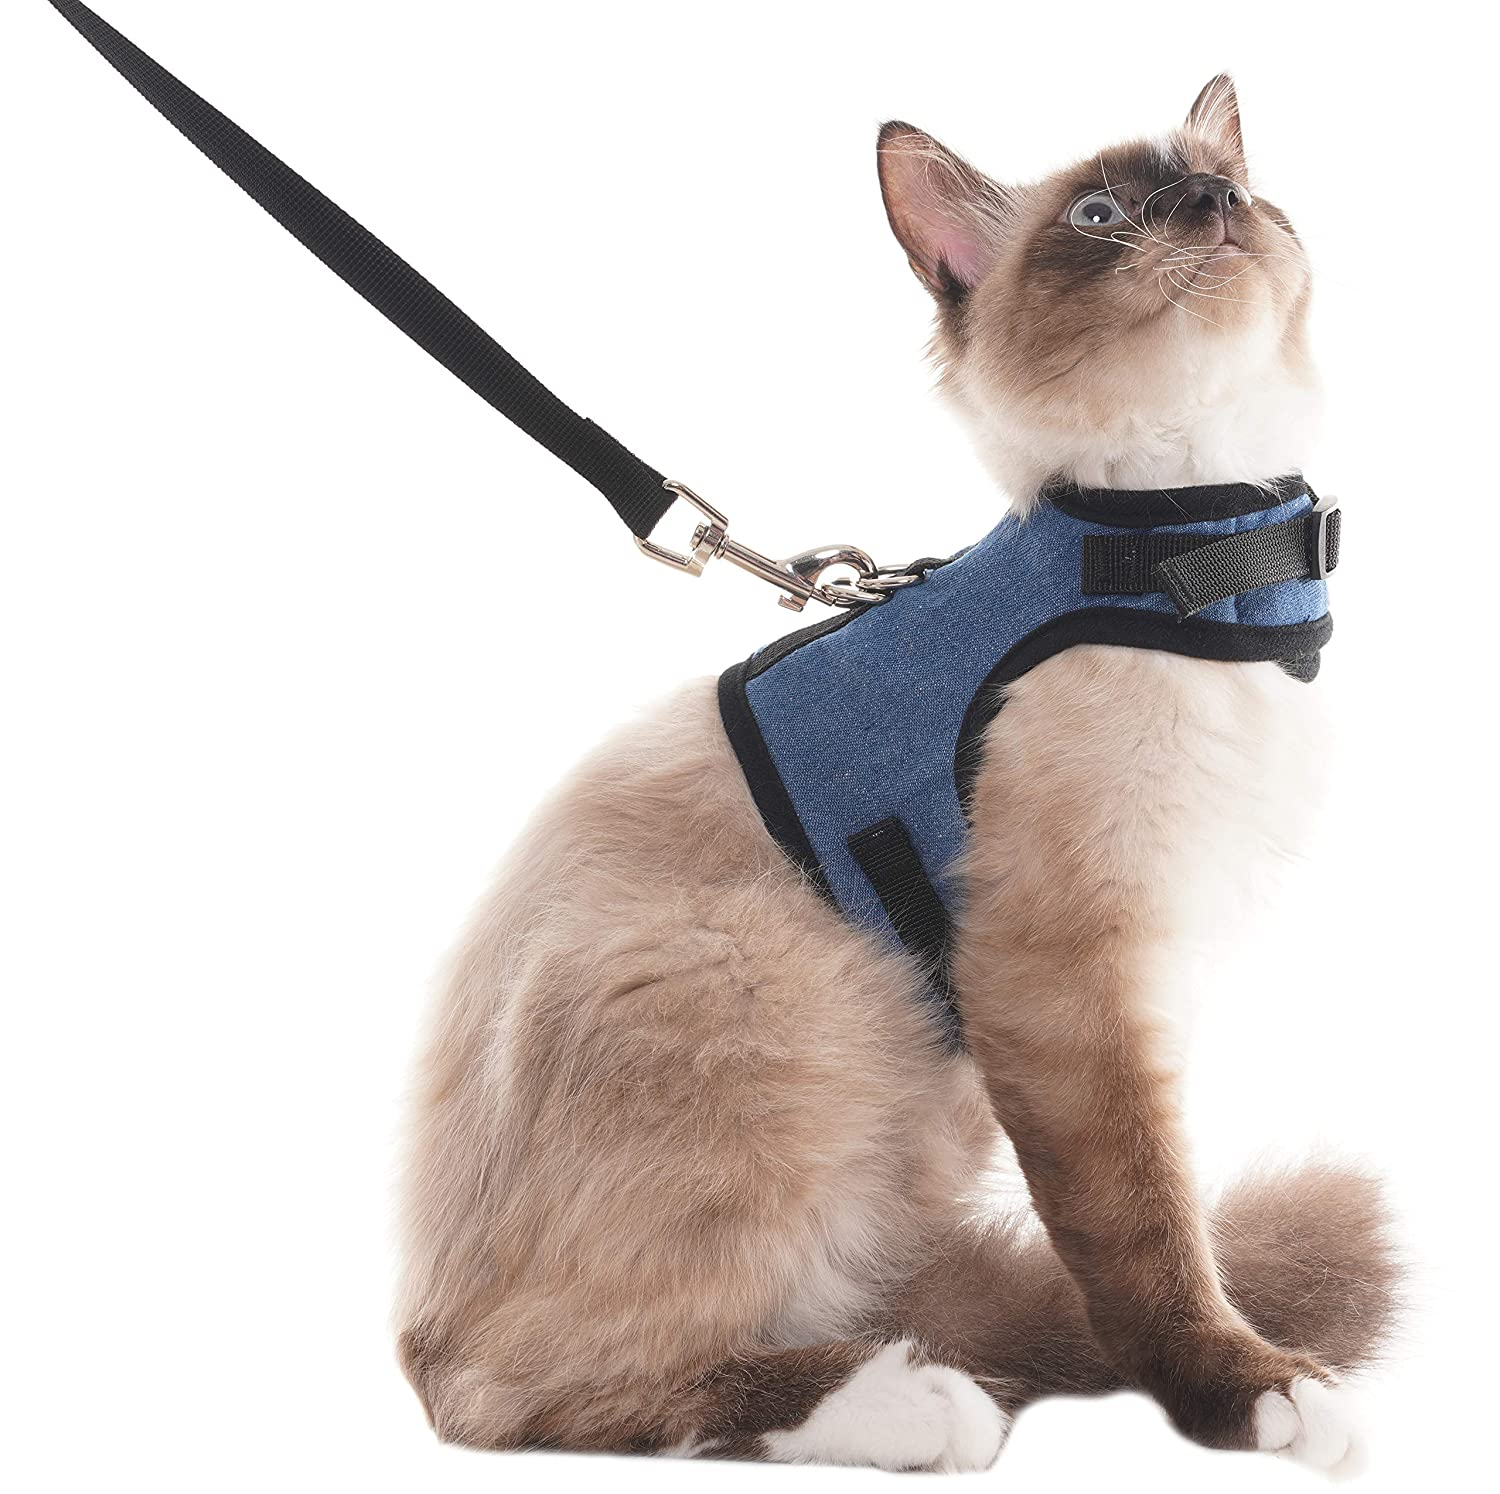 L SCENEREAL Escape Proof Cat Harness and Leash Adjustable Soft Mesh Vest Harness for Rabbits Puppy Kittens, L